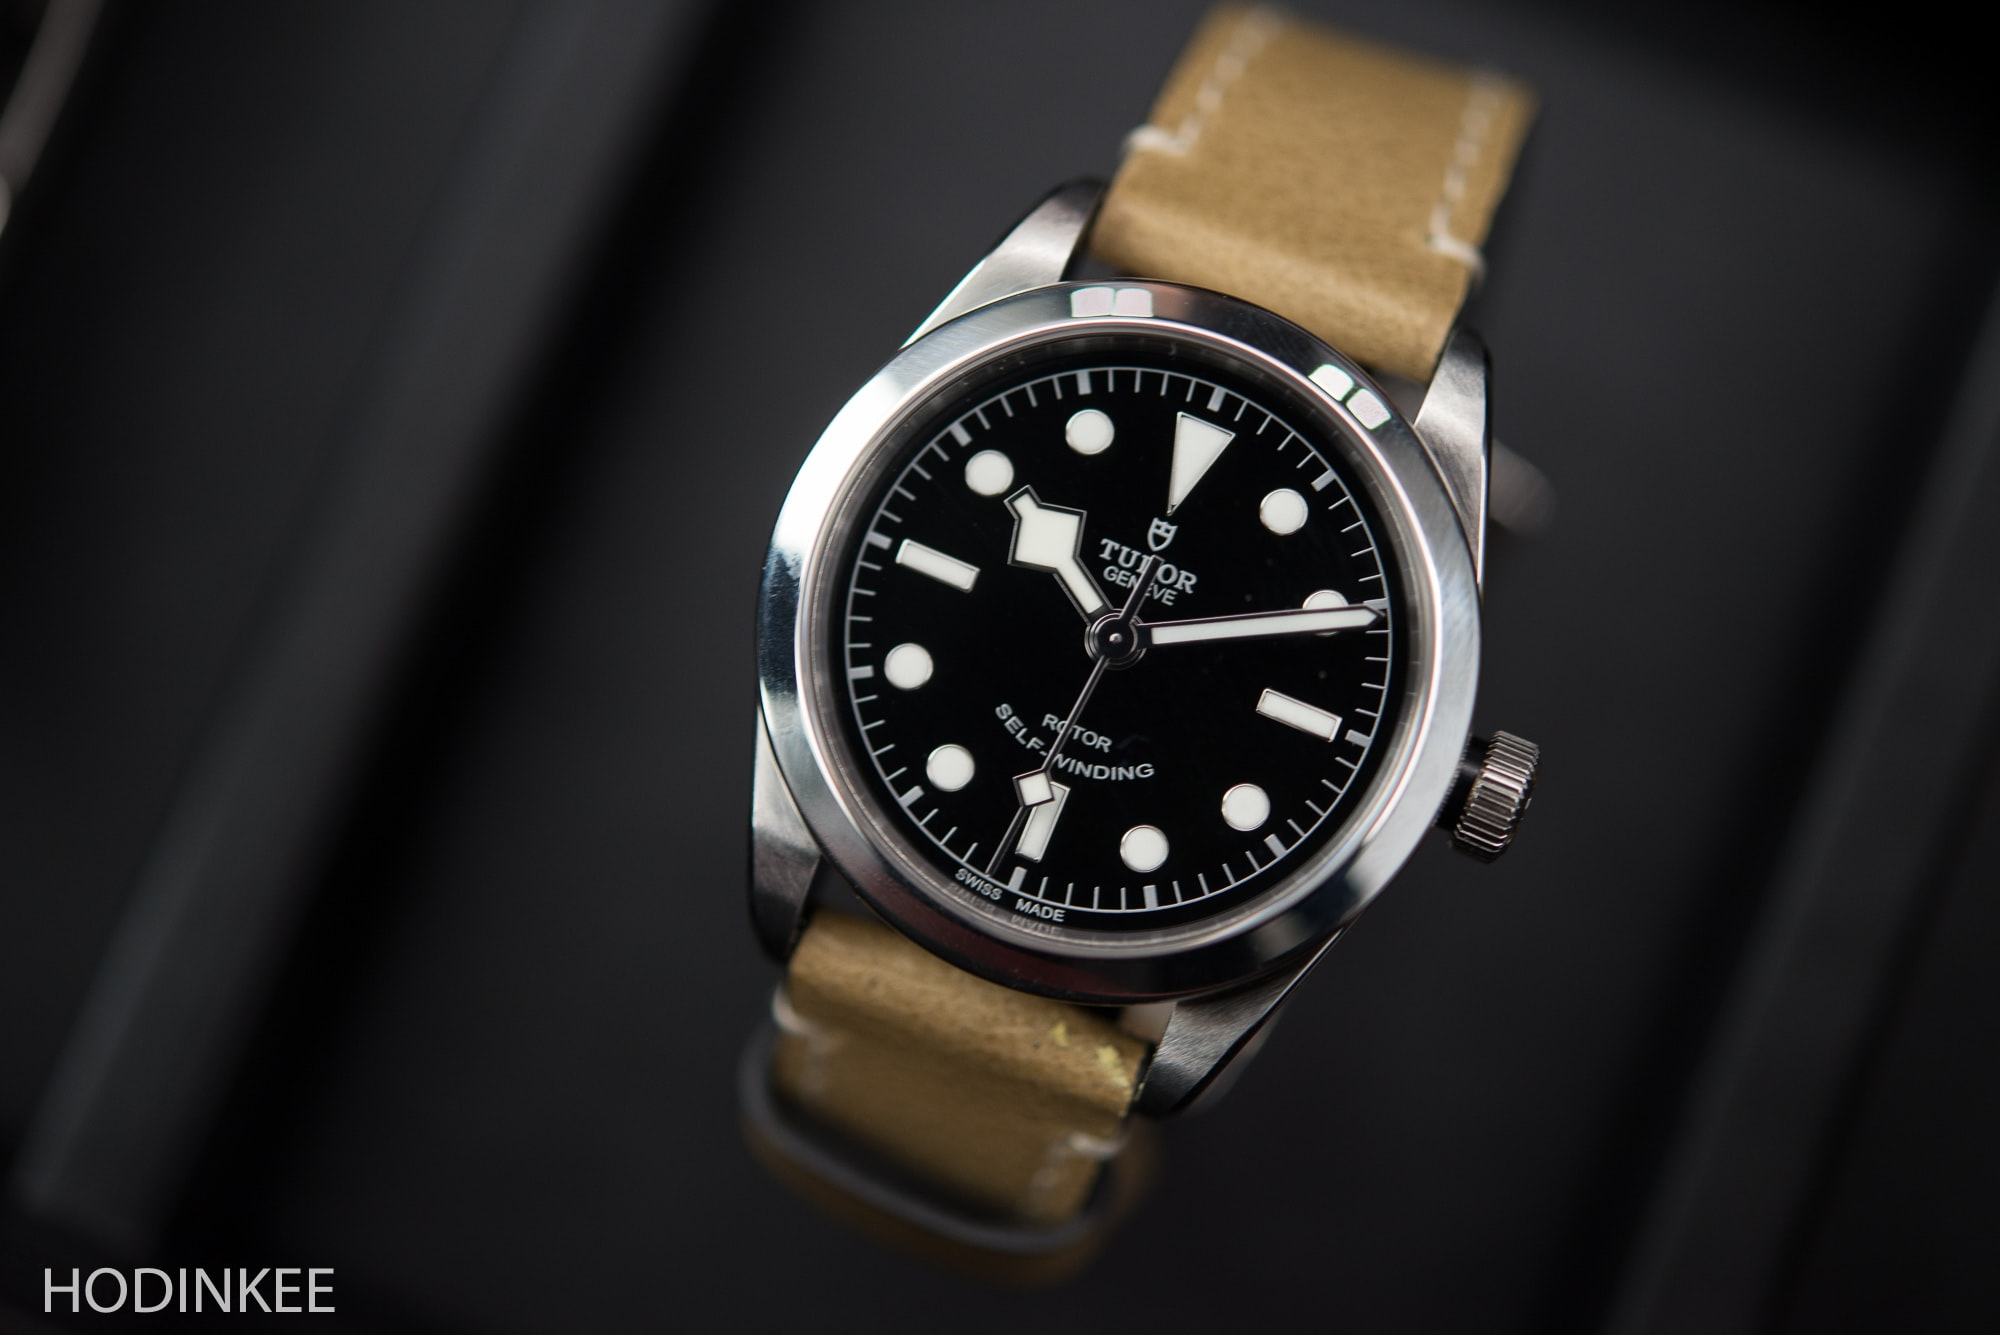 The Year In Review: The Top 20 Most Popular HODINKEE Posts Of 2016 The Year In Review: The Top 20 Most Popular HODINKEE Posts Of 2016 TudorBlackBay36 7